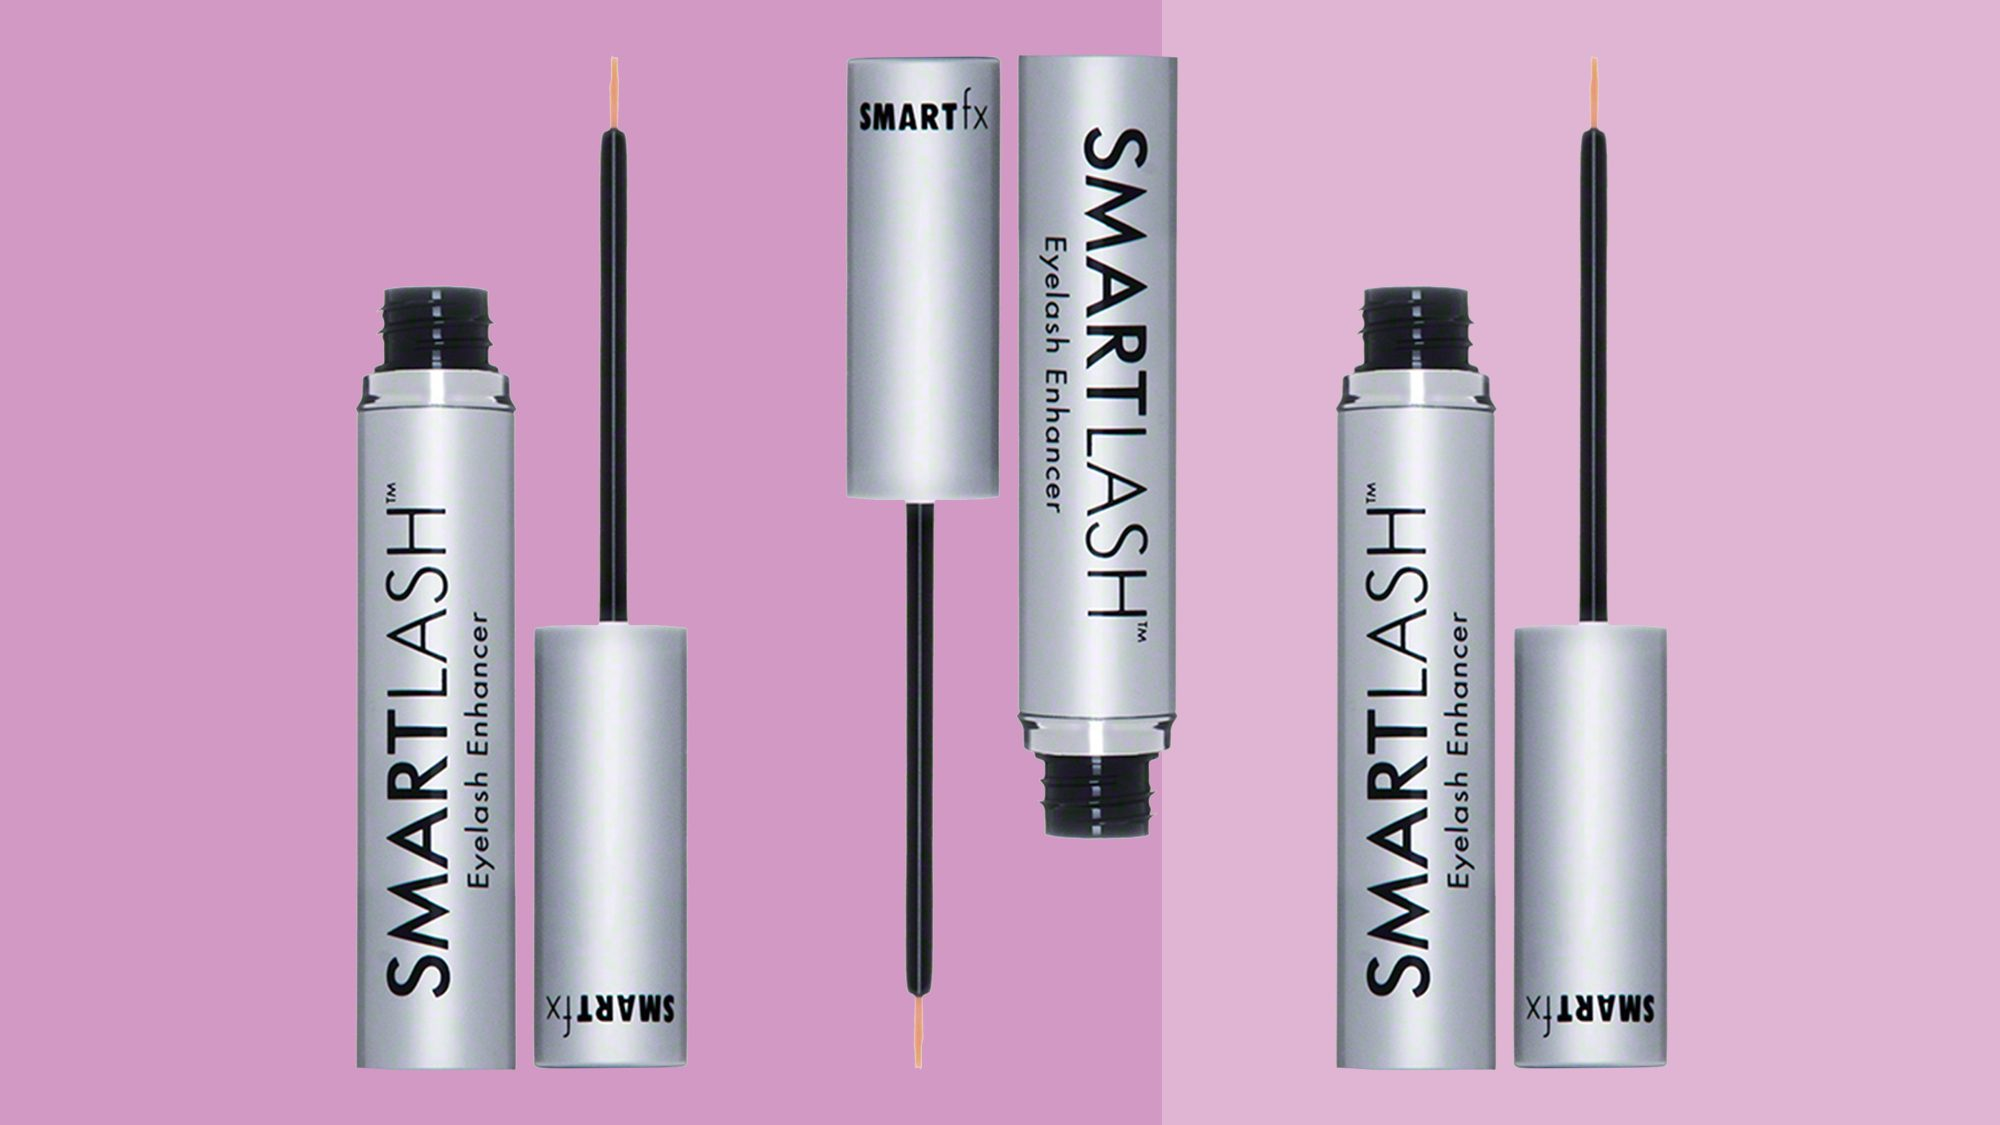 SmartFX The Original SmartLash Eyelash Enhancer